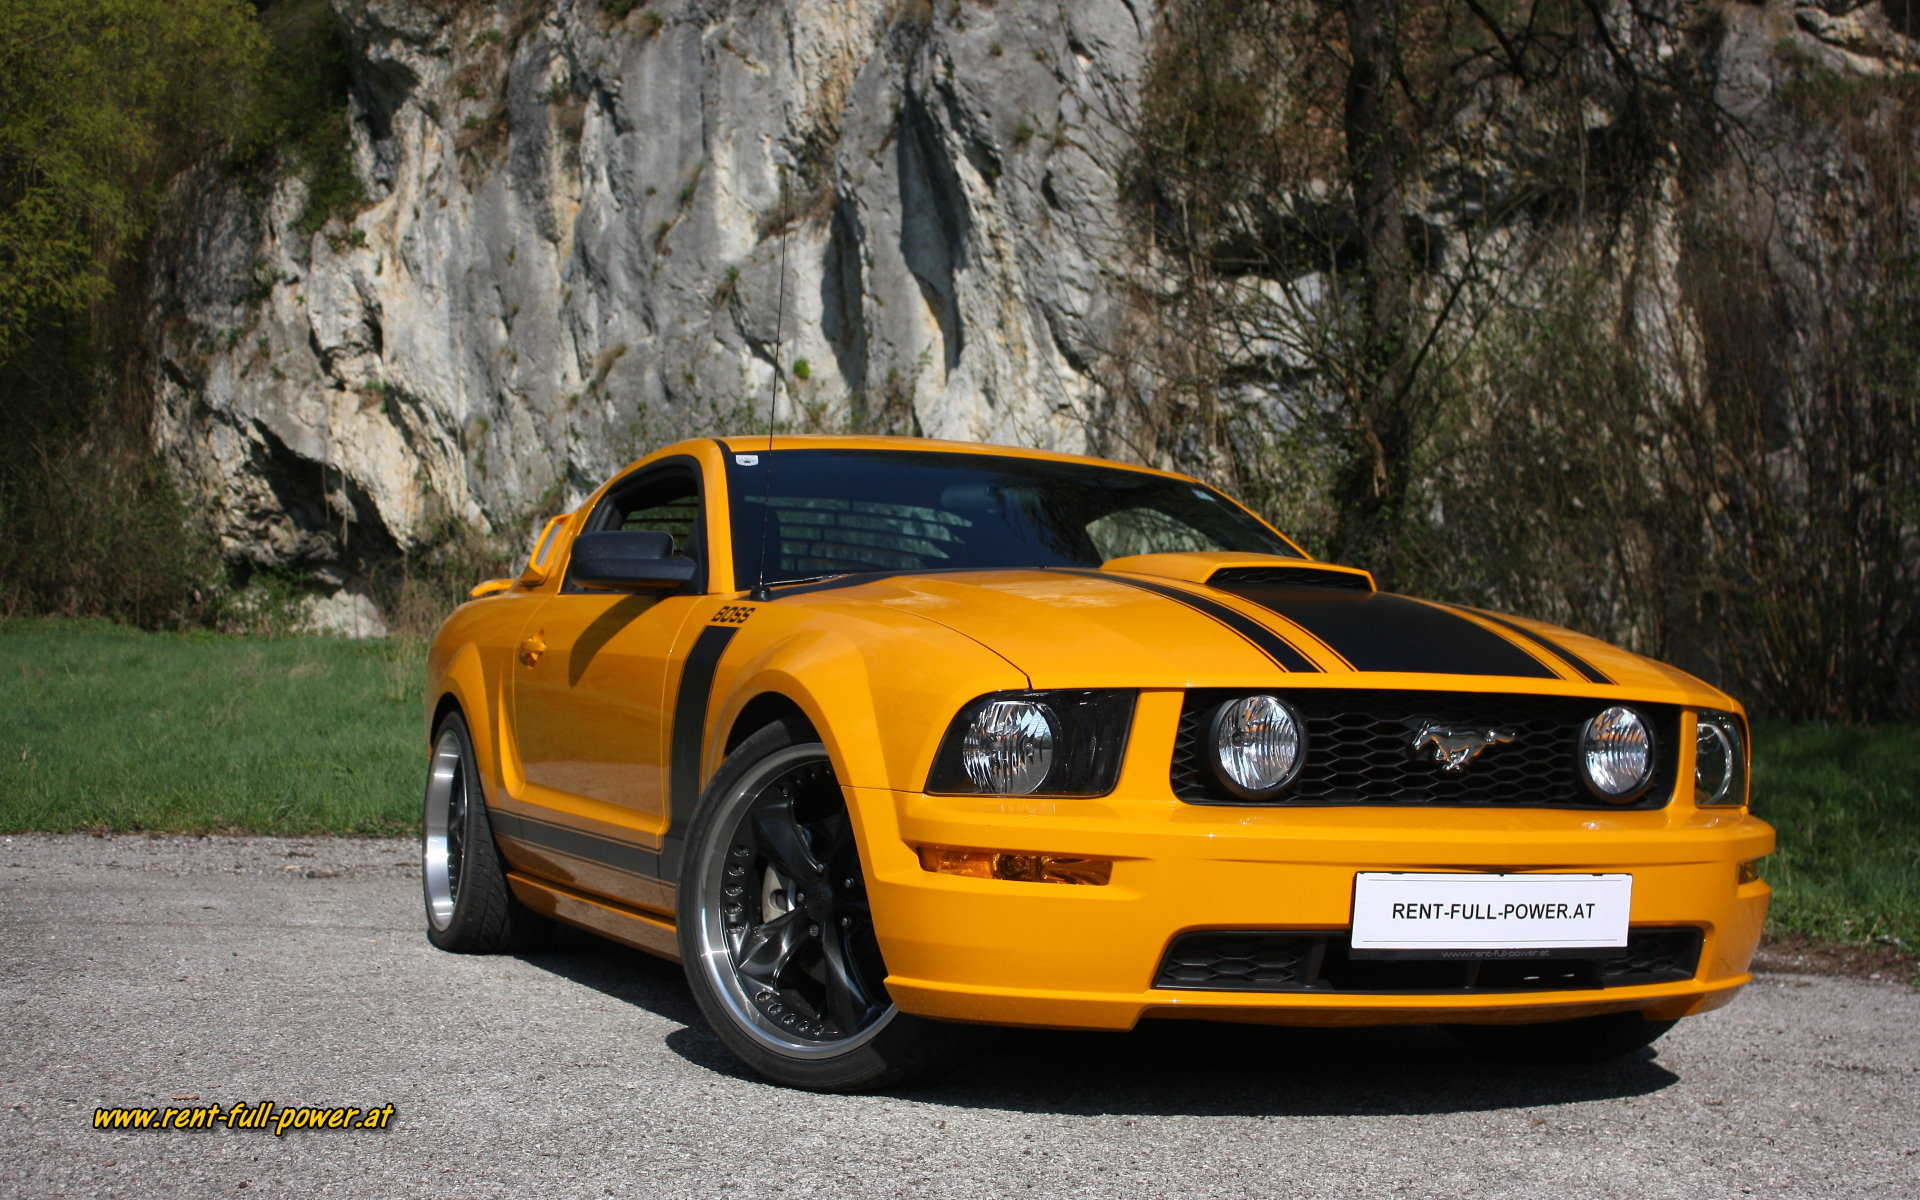 Ford Mustang GT US cars